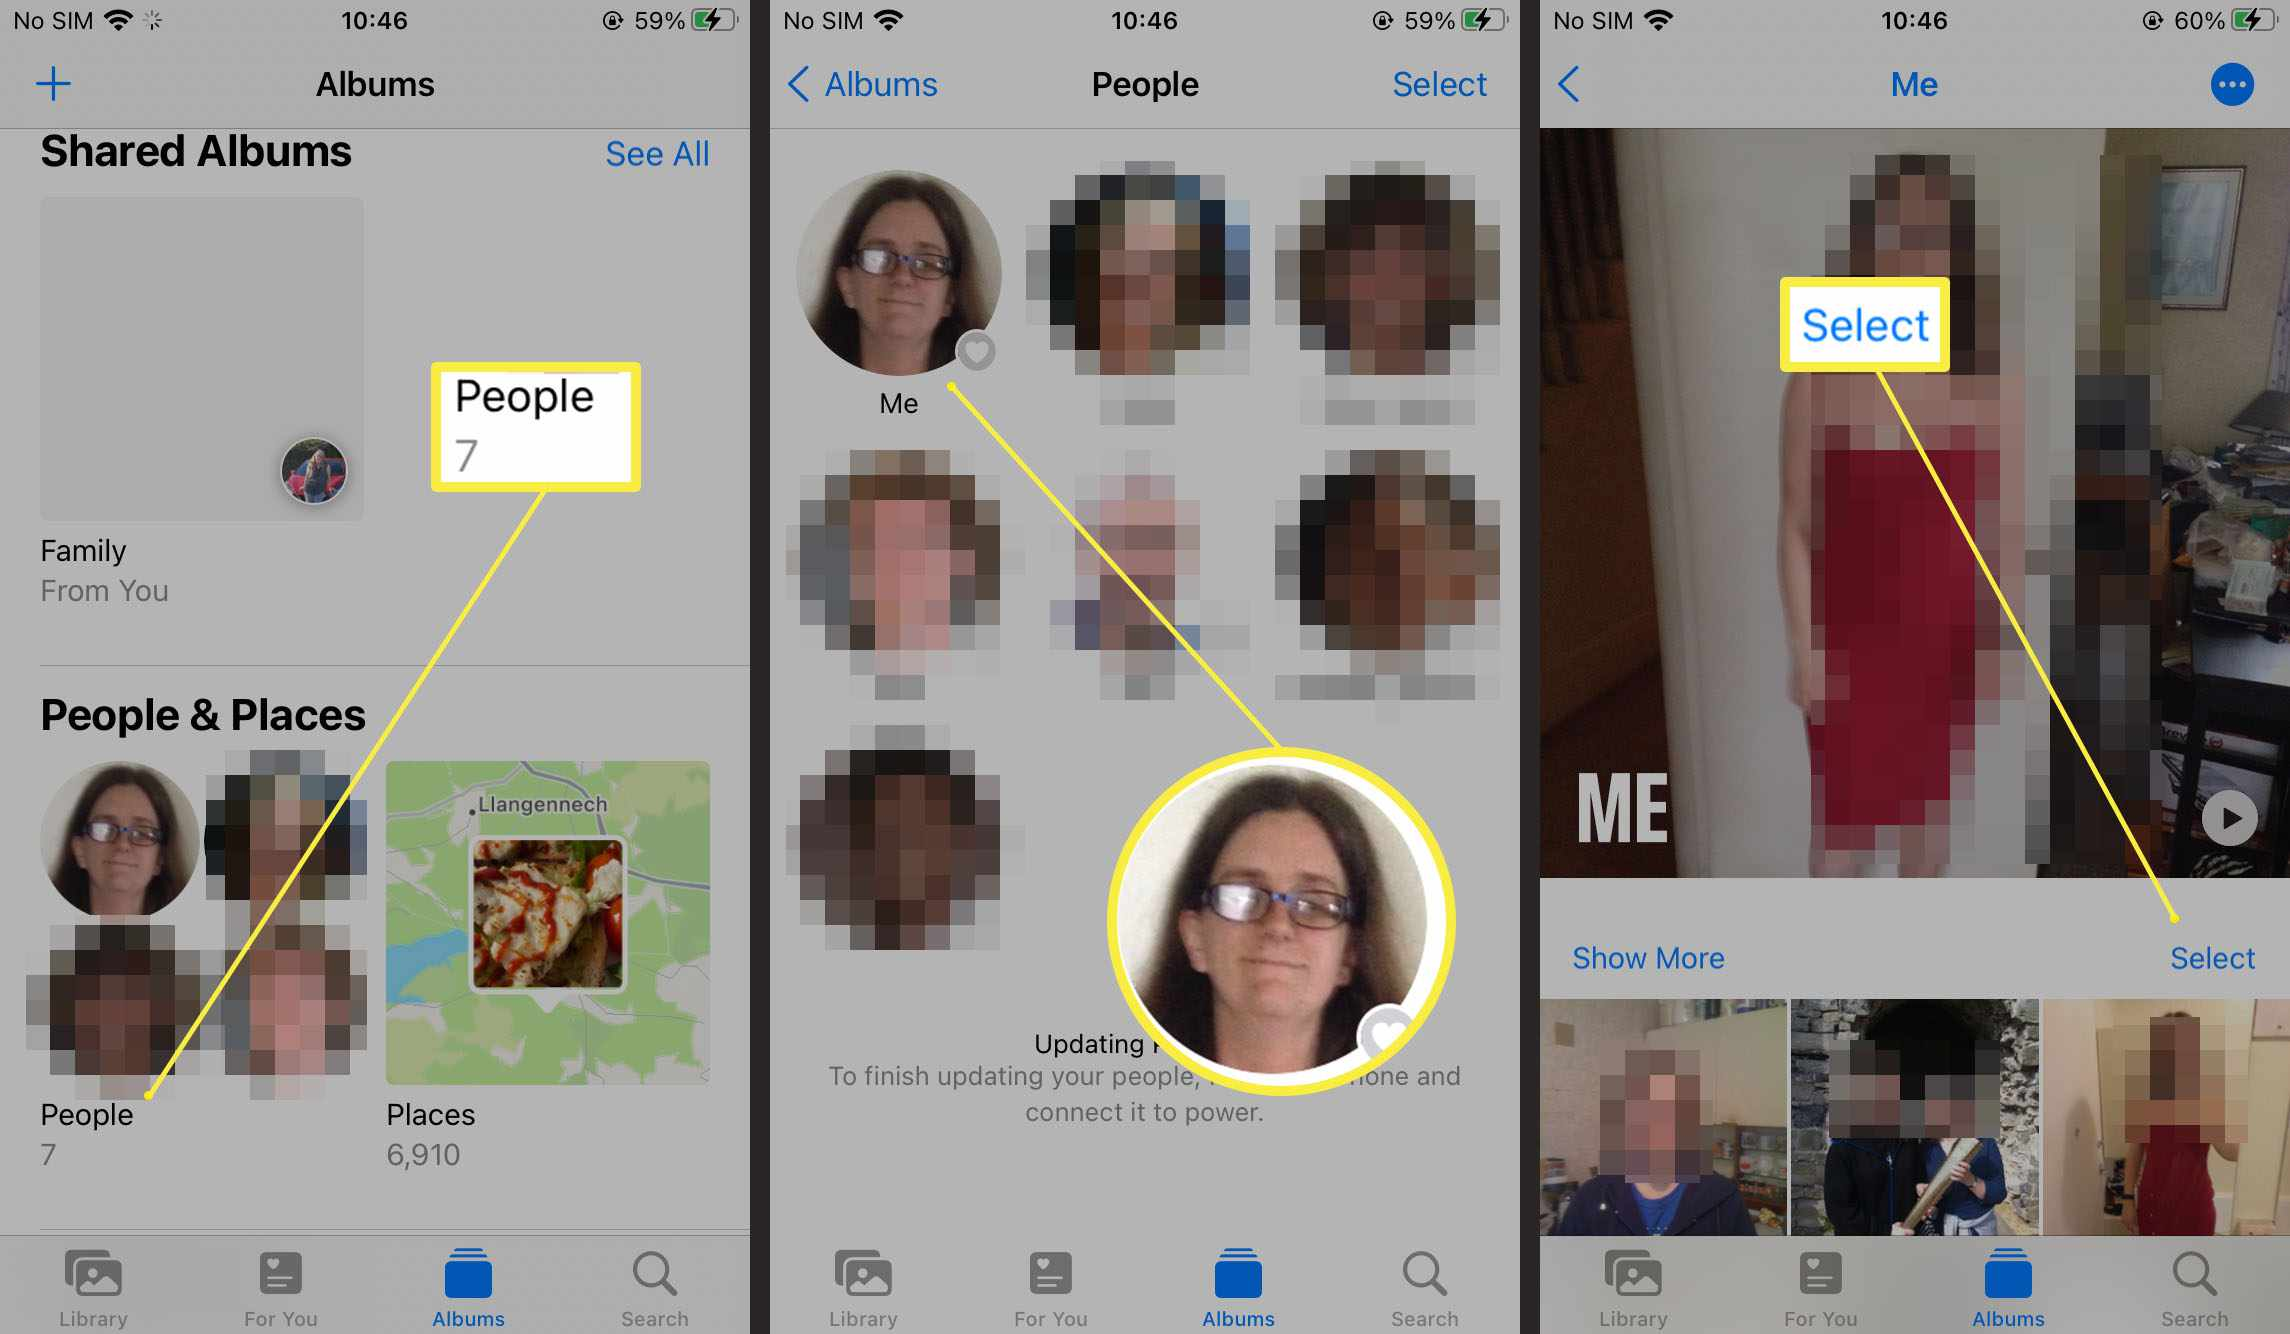 Steps required to select a person in Photos on iOS 15